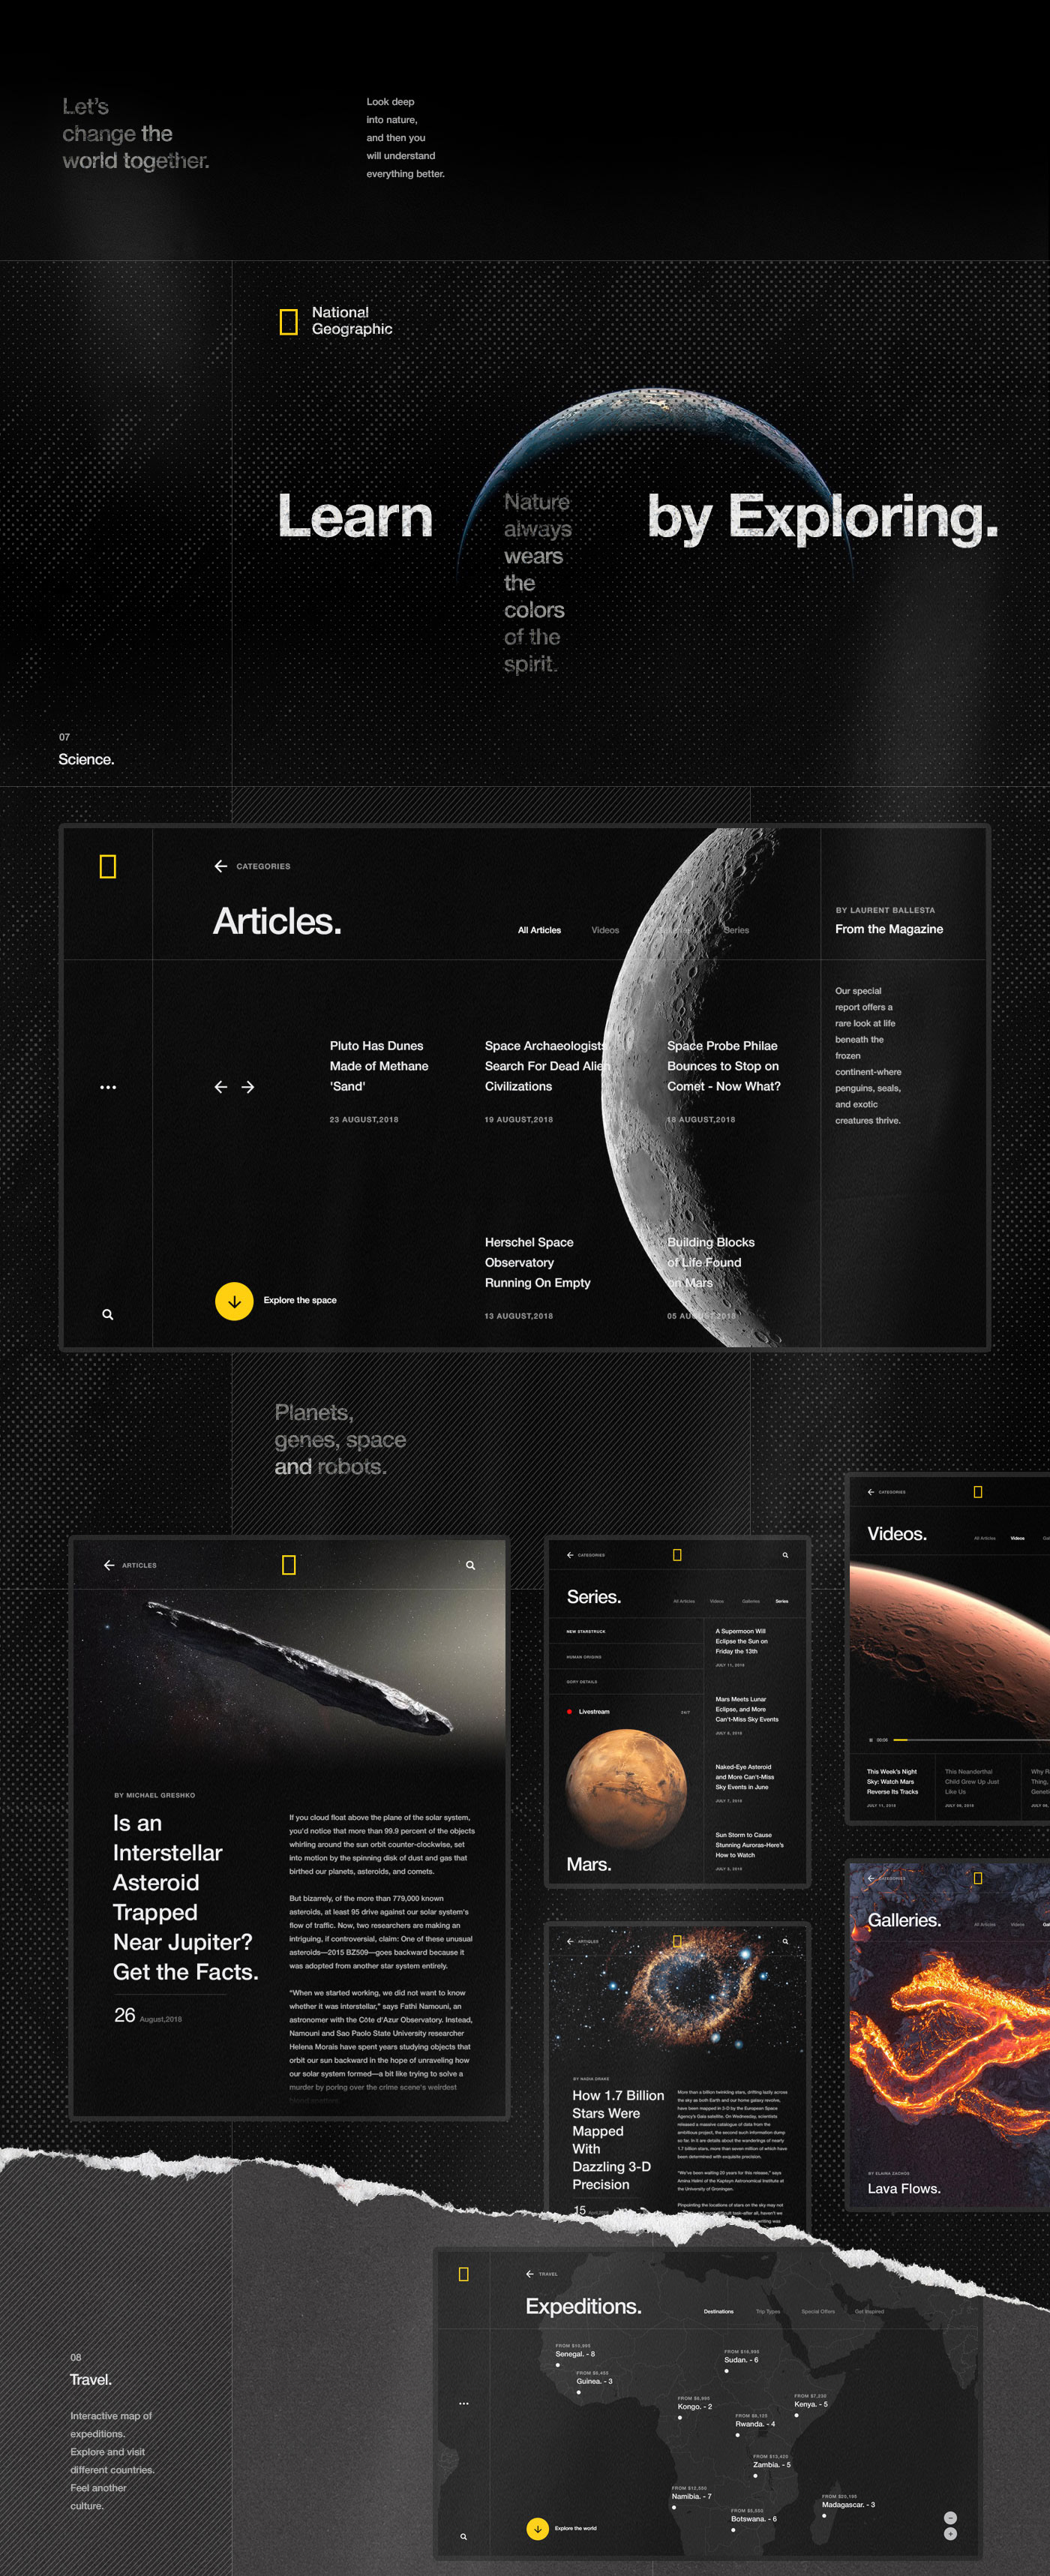 Web Design & UI/UX: National Geographic World Changing Intuitive Site